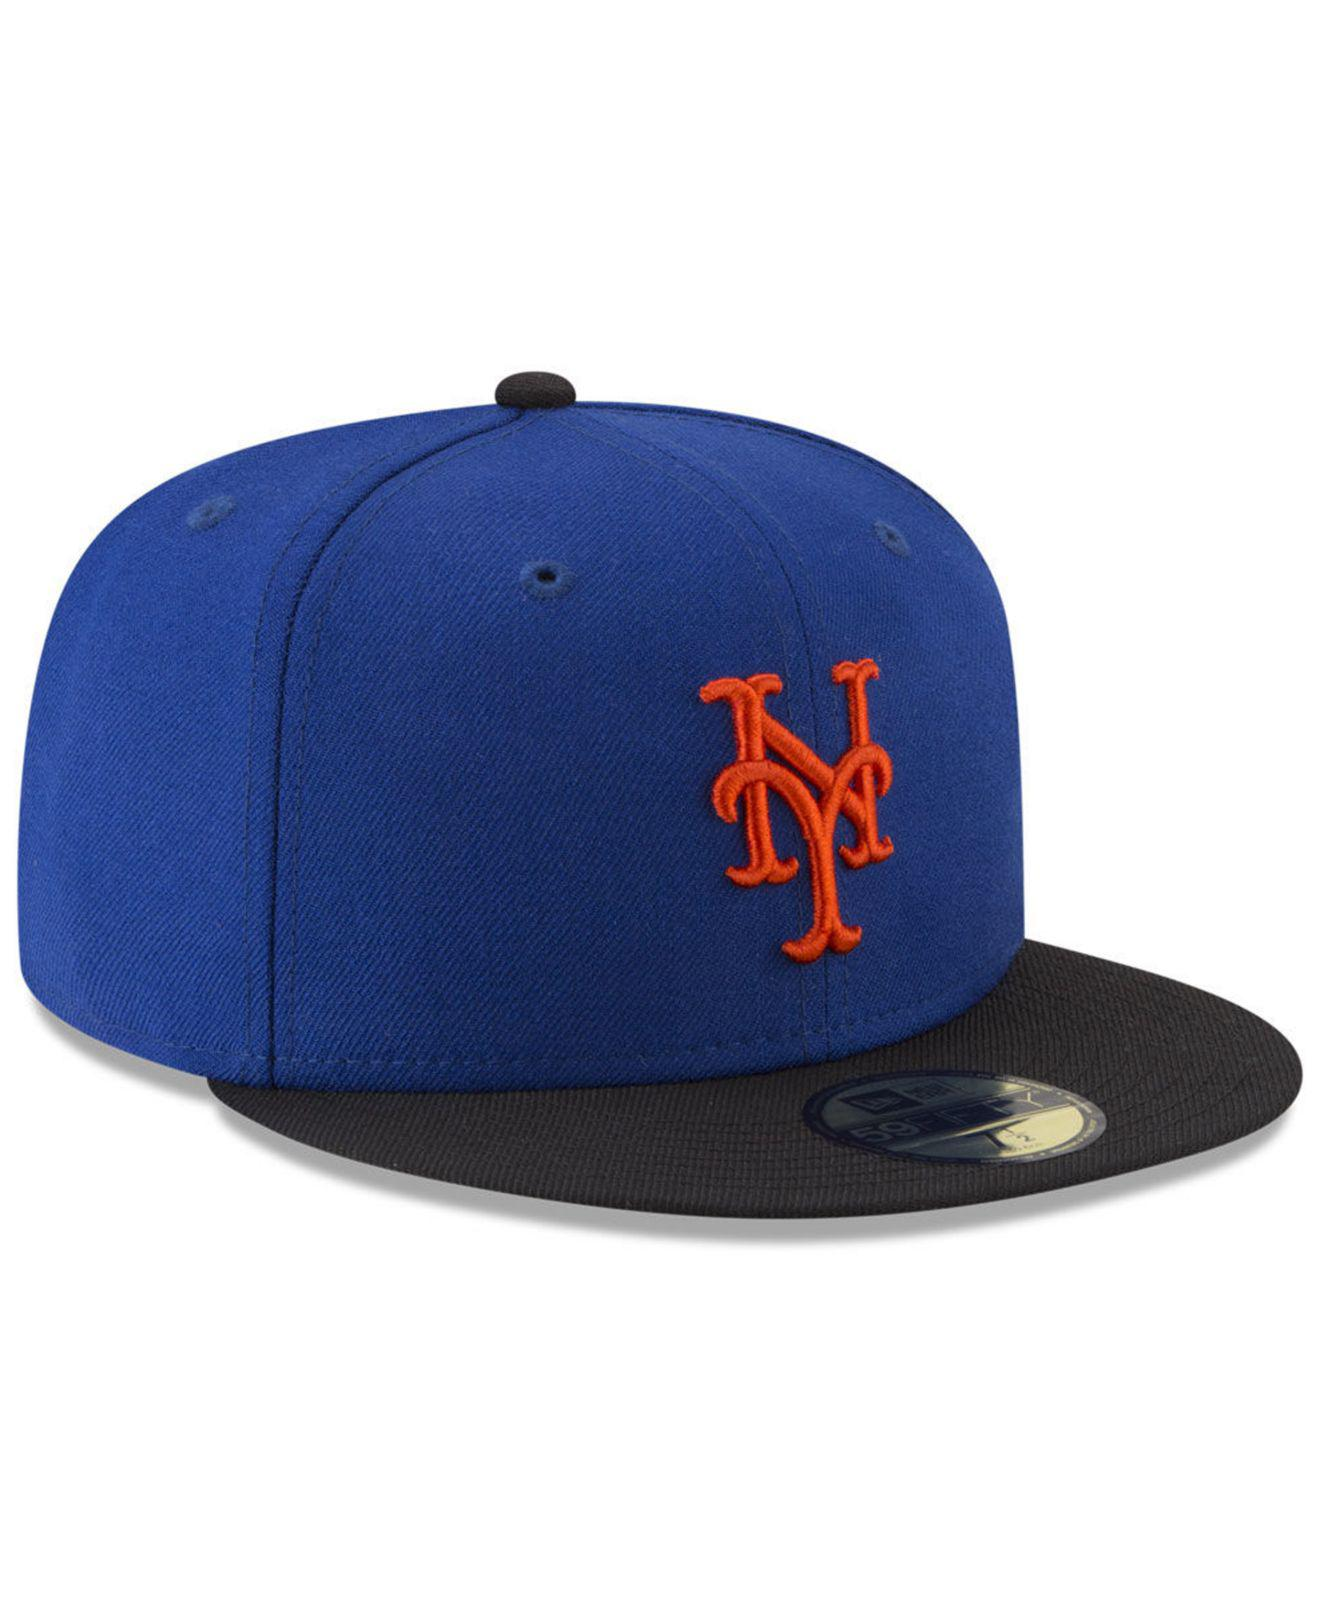 a8c4d823edc ... New York Mets Batting Practice Wool Flip 59fifty Fitted Cap for Men -.  View fullscreen